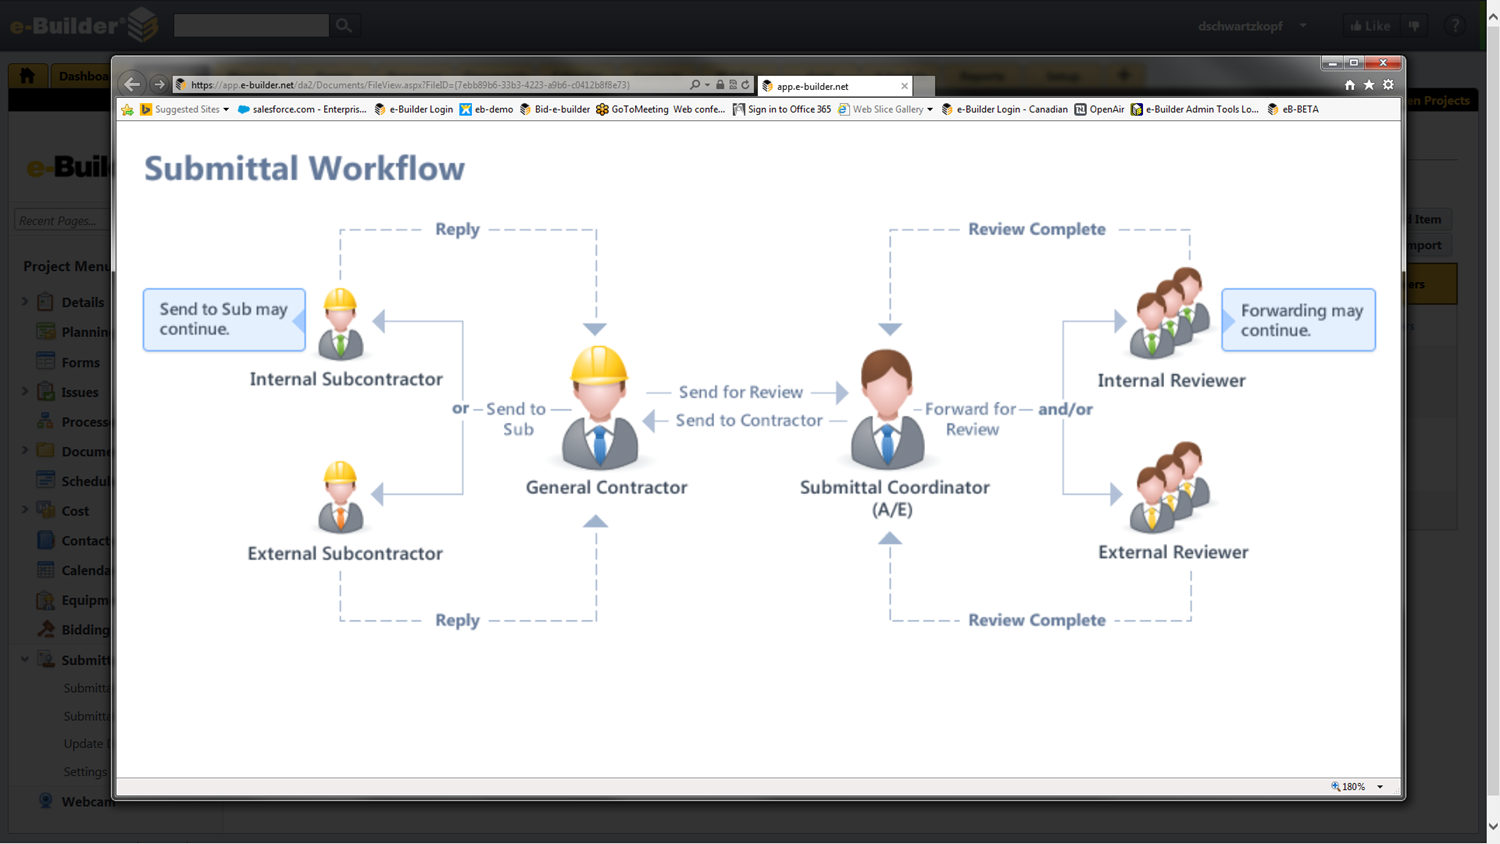 Submittal workflow